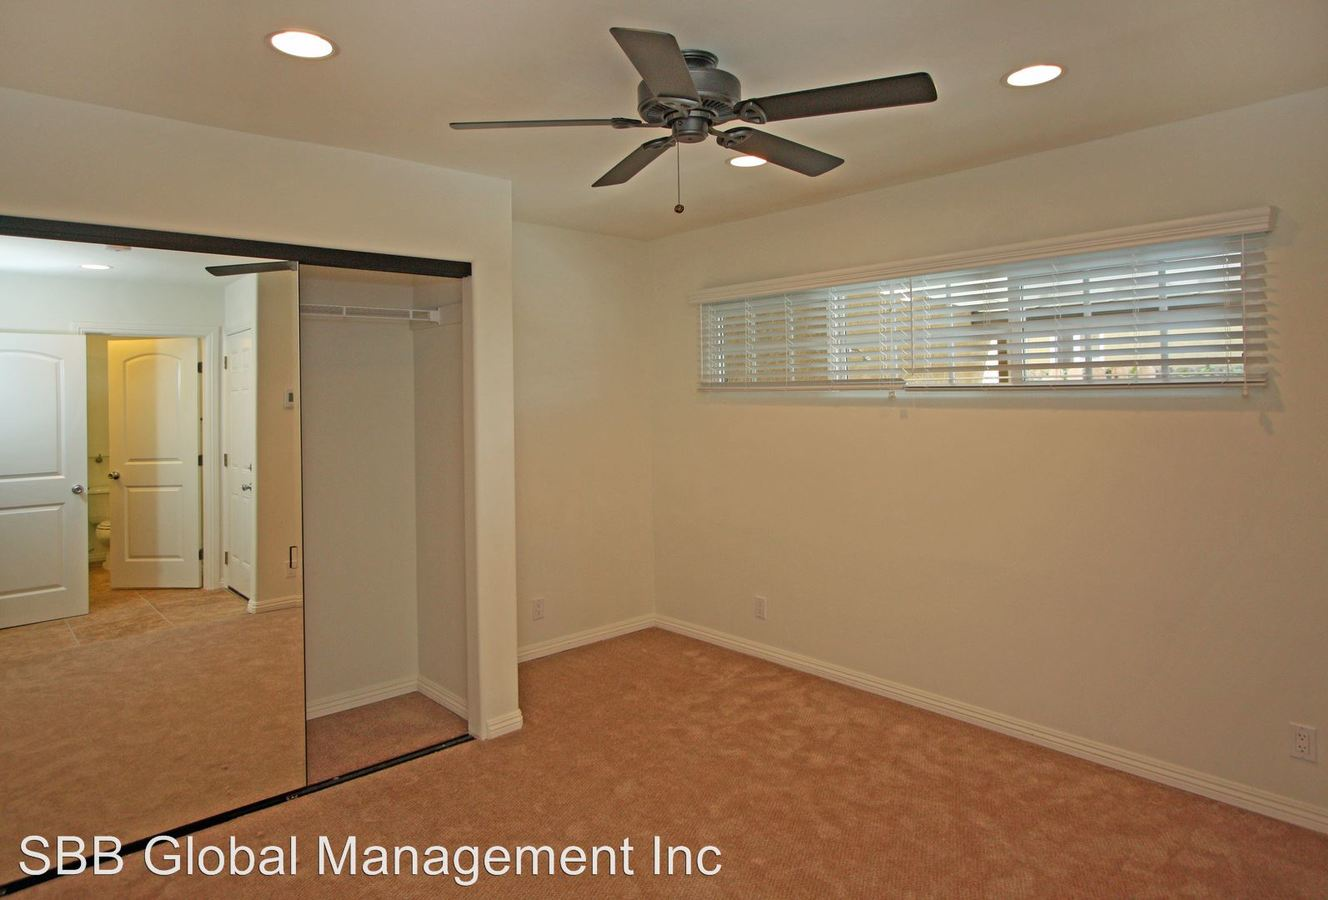 2 Bedrooms 1 Bathroom Apartment for rent at 1216 West Balboa Blvd in Newport Beach, CA